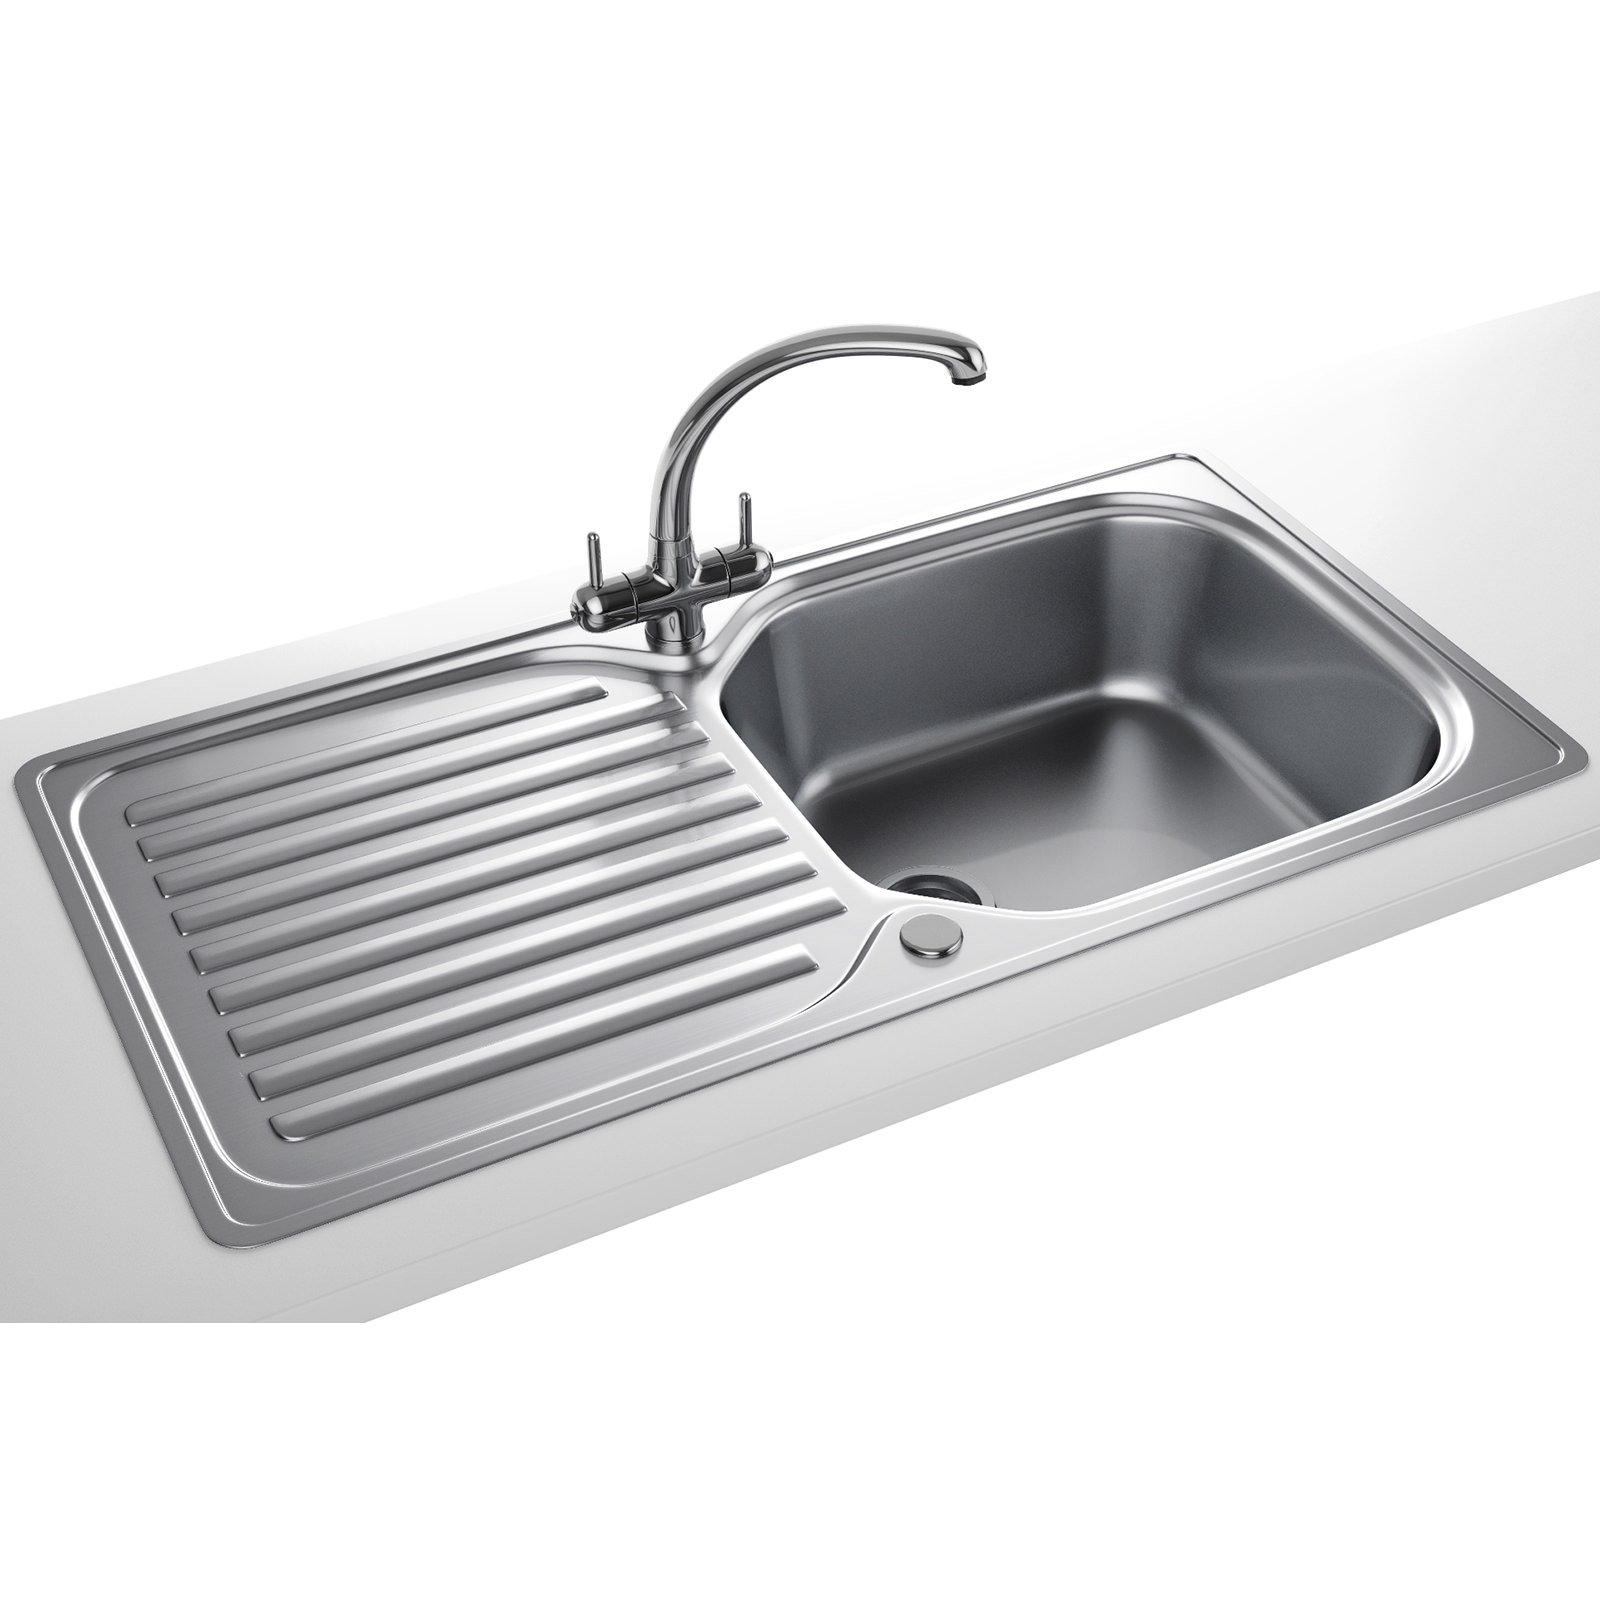 Franke Sinks And Taps : Franke Elba Propack ELN 611 96 Stainless Steel Kitchen Sink And Tap